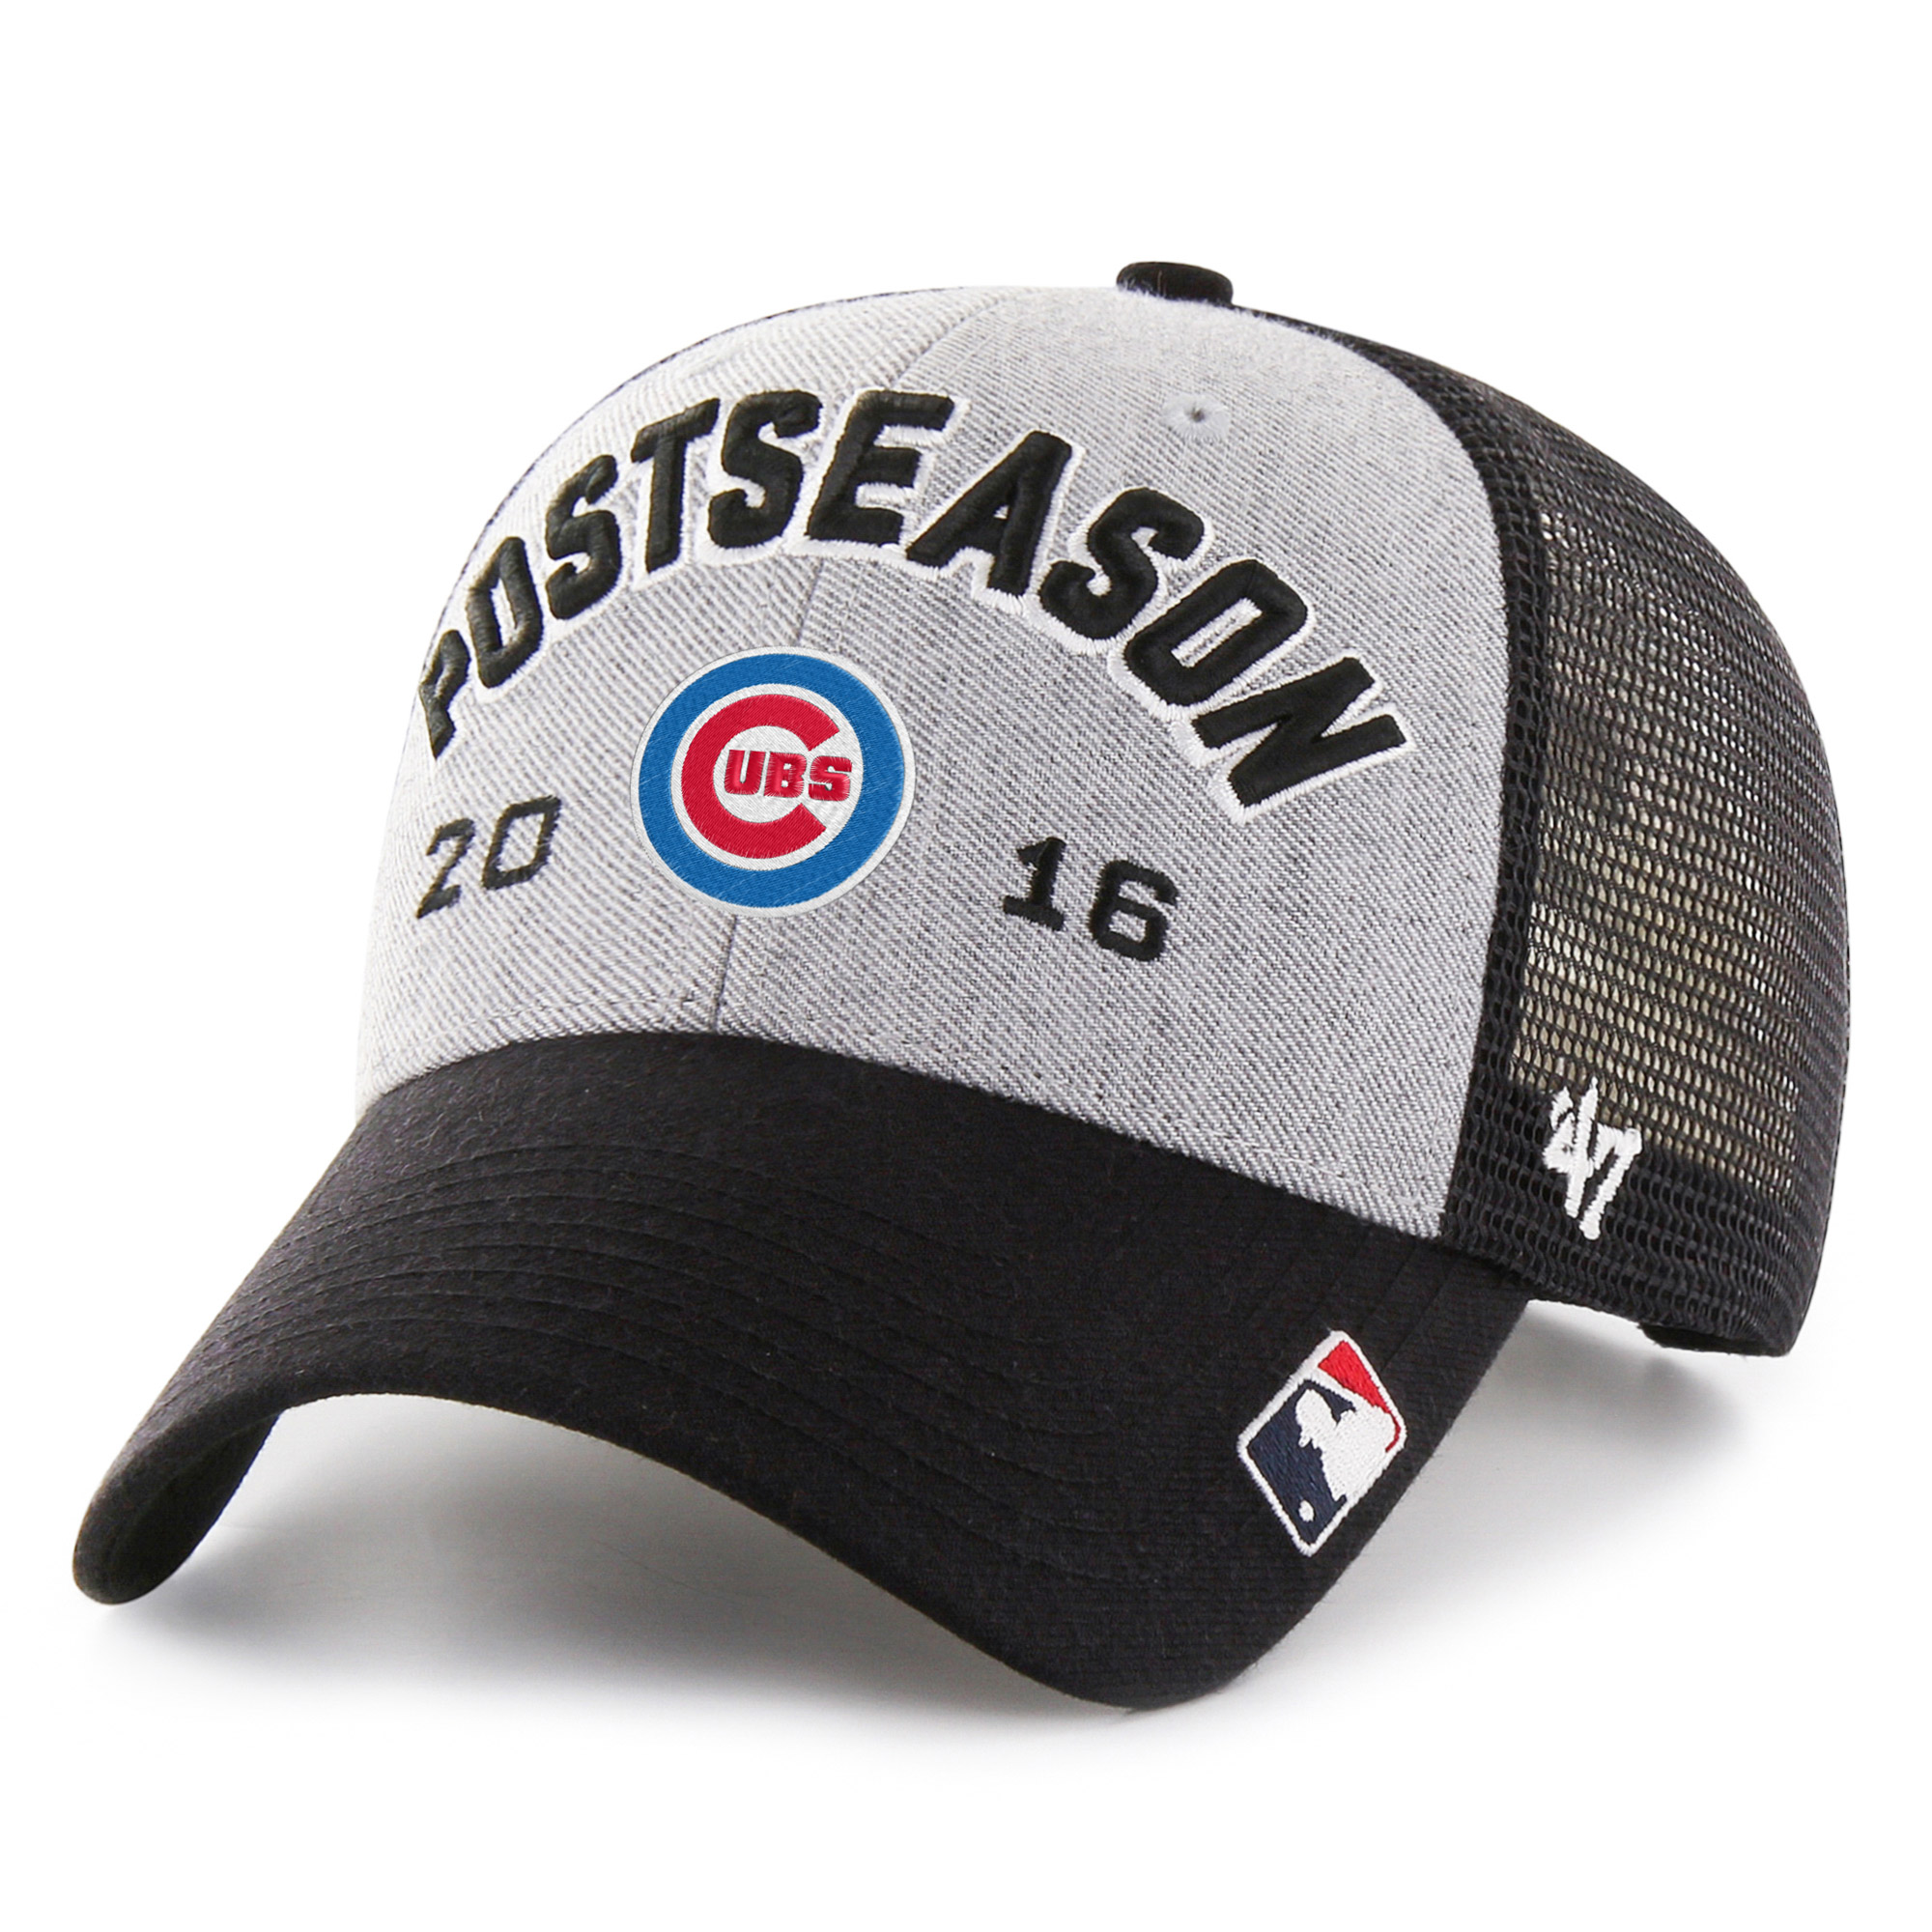 Chicago Cubs '47 2016 NL Central Division Champions Locker Room Adjustable Hat - Gray/Black - OSFA